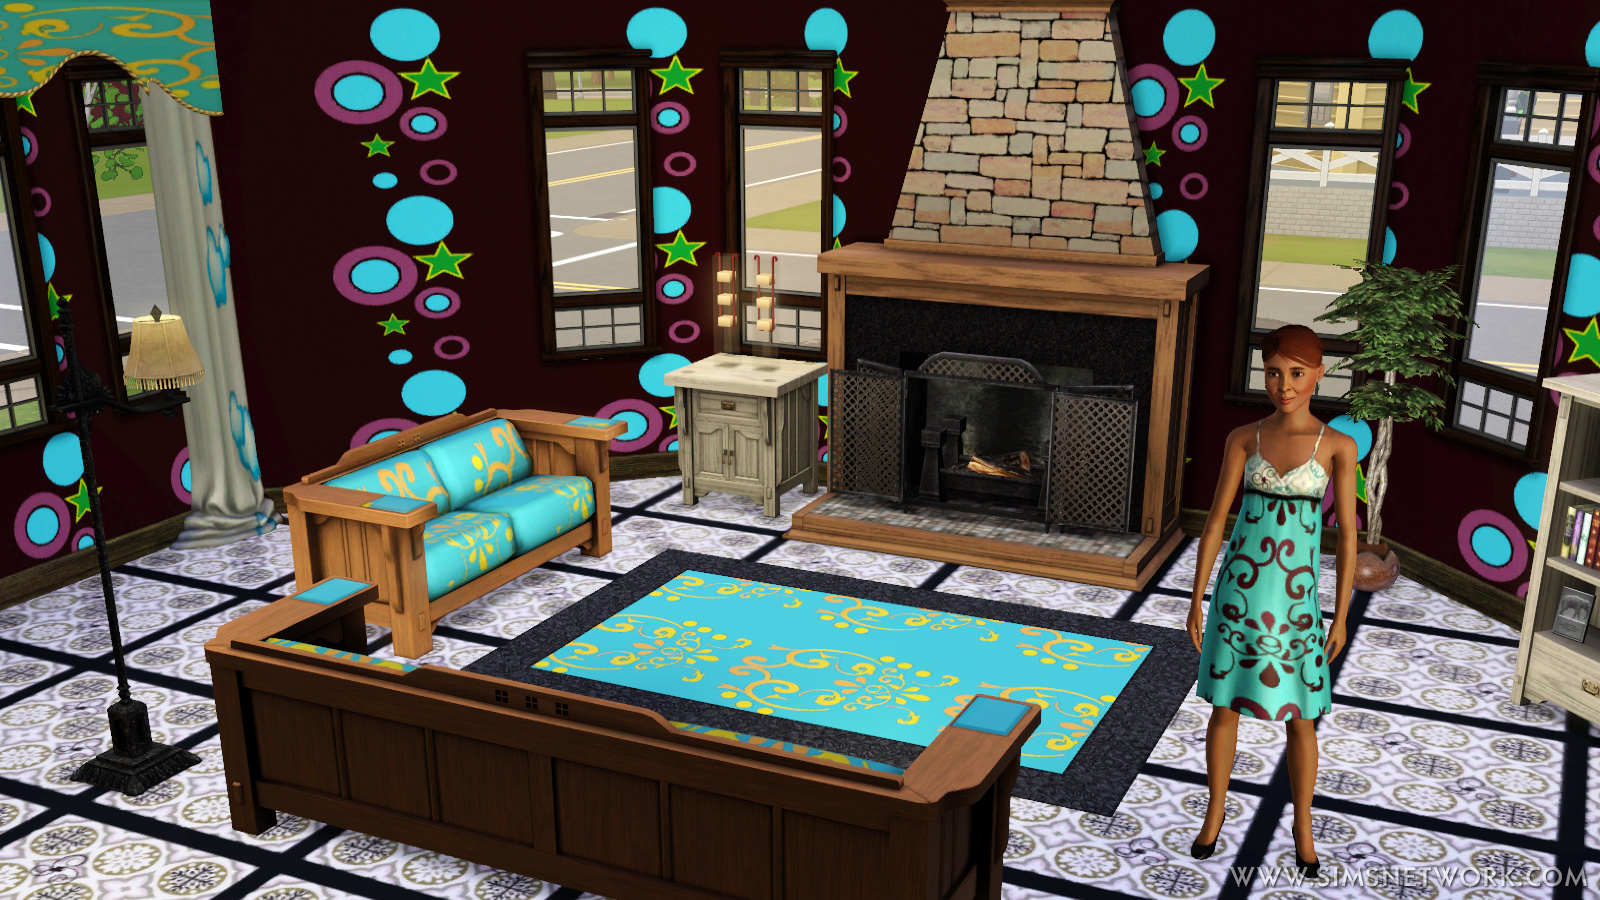 Sims 3 xx nackt images